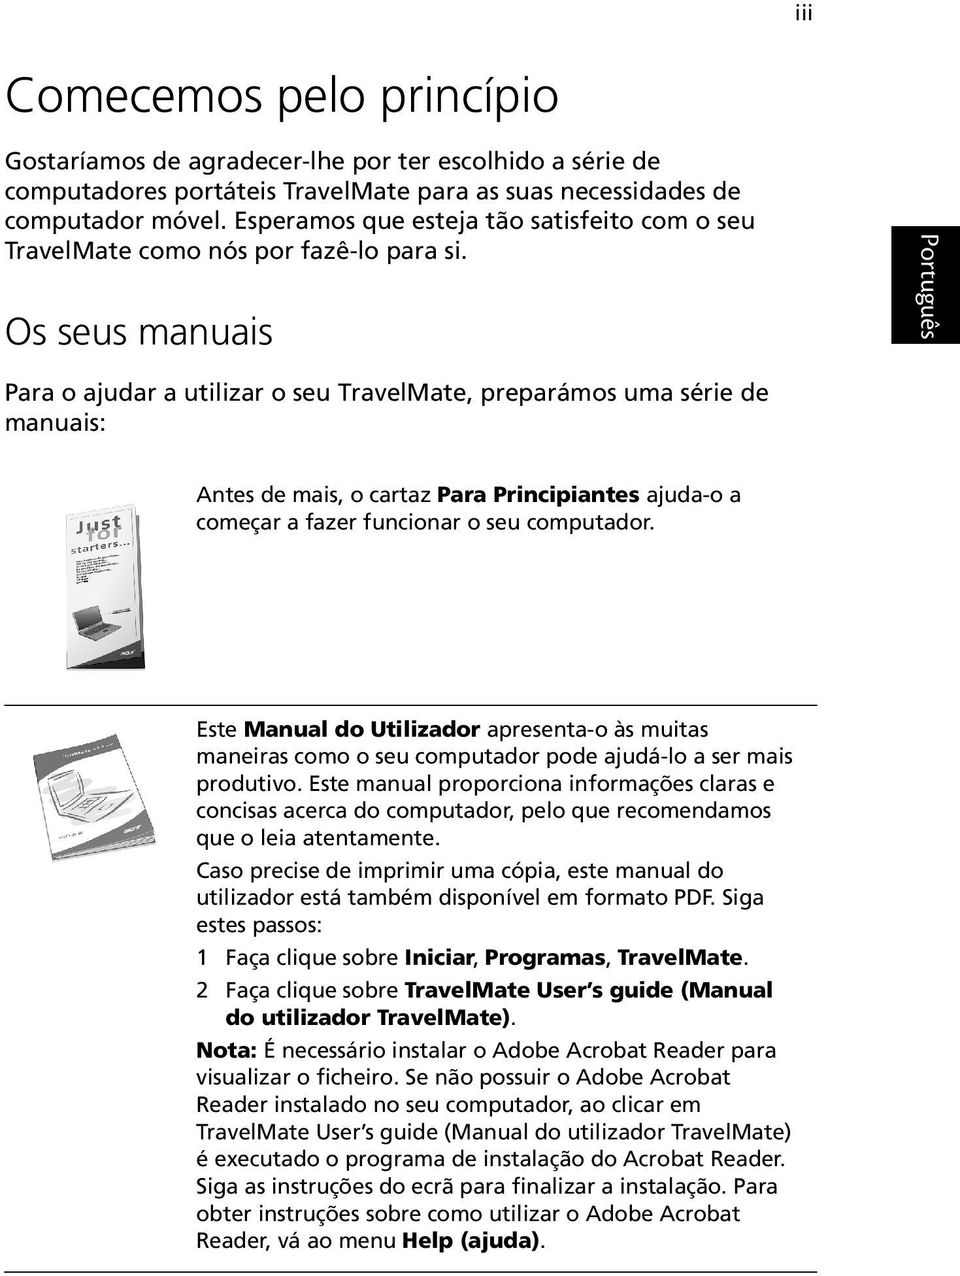 ACER TRAVELMATE 610 SERIES INVILINK - IRDA DRIVERS FOR WINDOWS 7